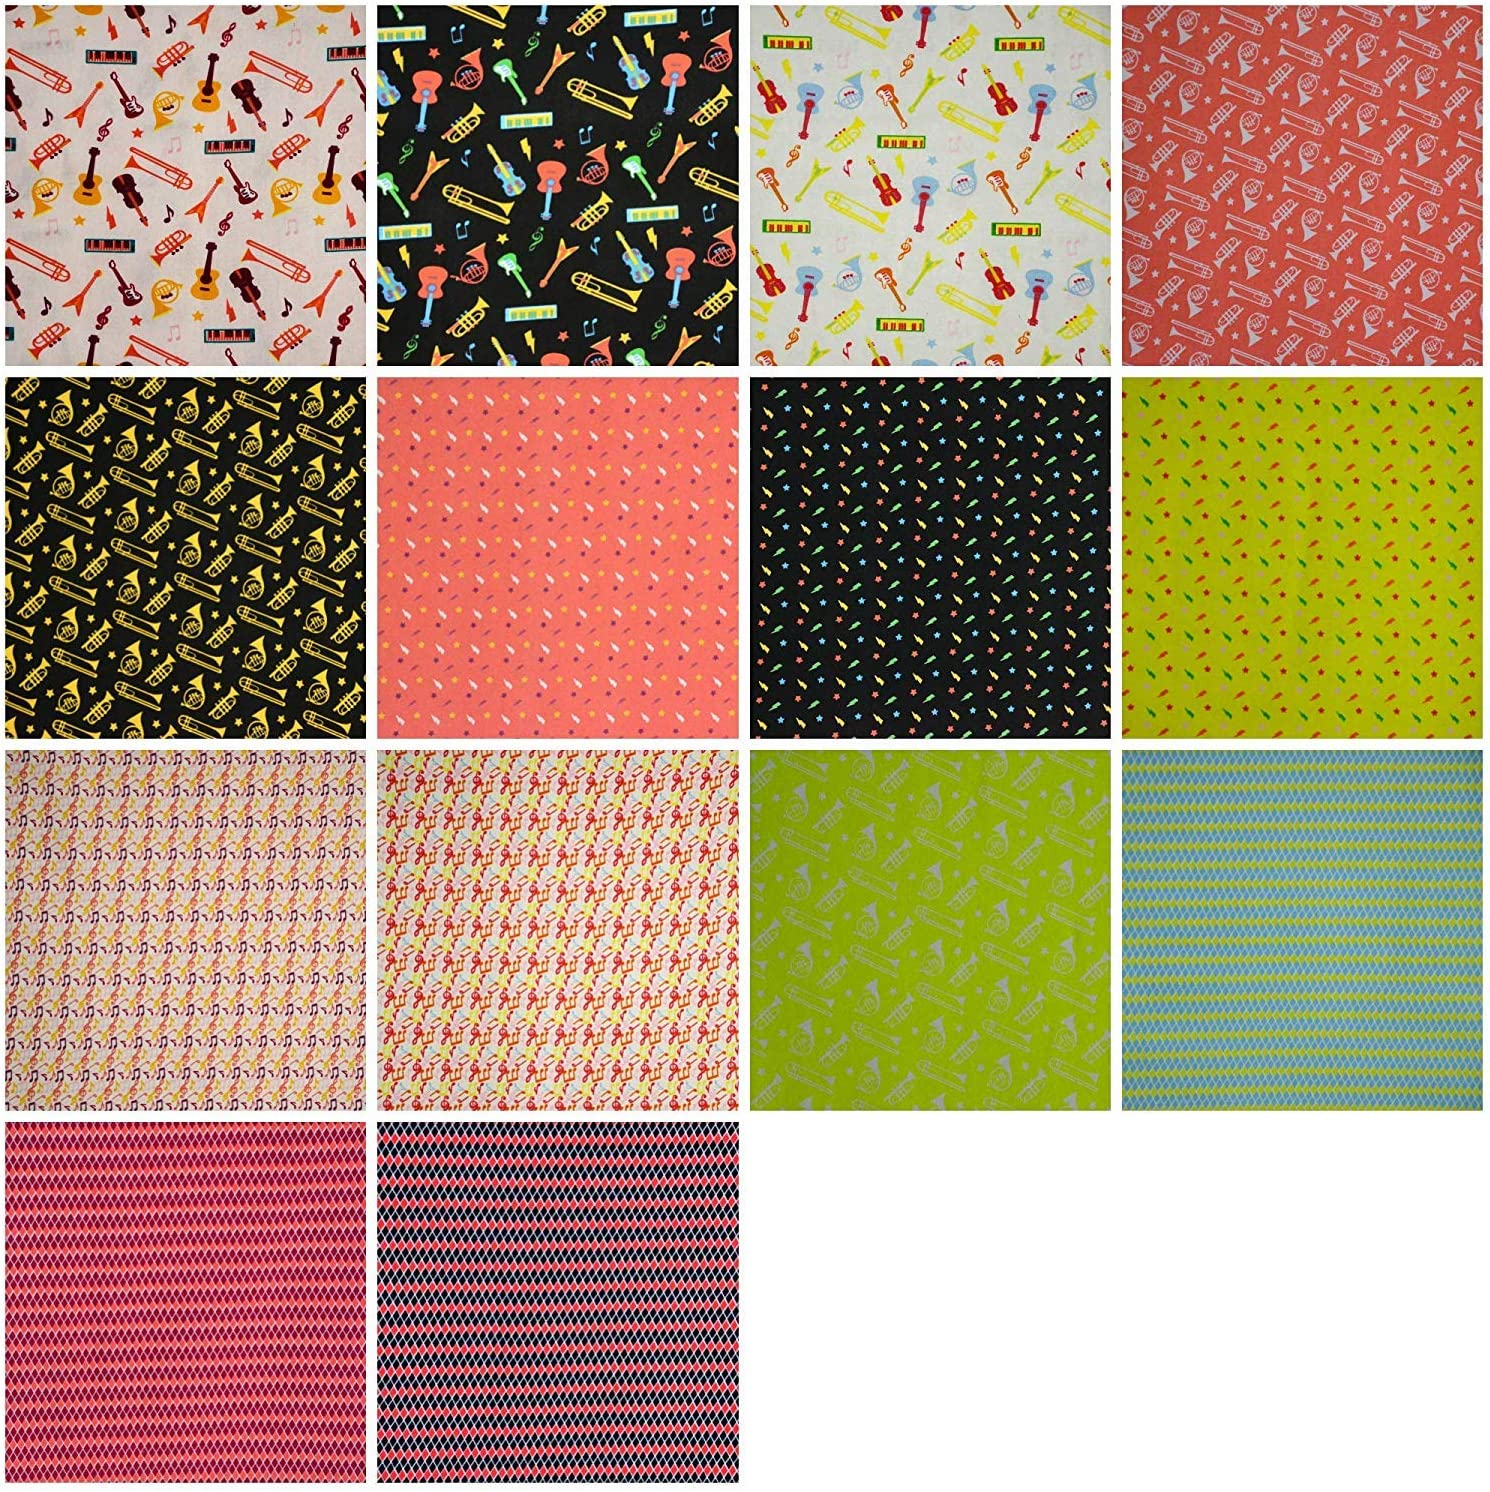 Jelly Rolls Fabric for Quilting 2.5 W x 45 L Craft 100/% Cotton Music Affair Design Pack of 20 Strips Patchwork